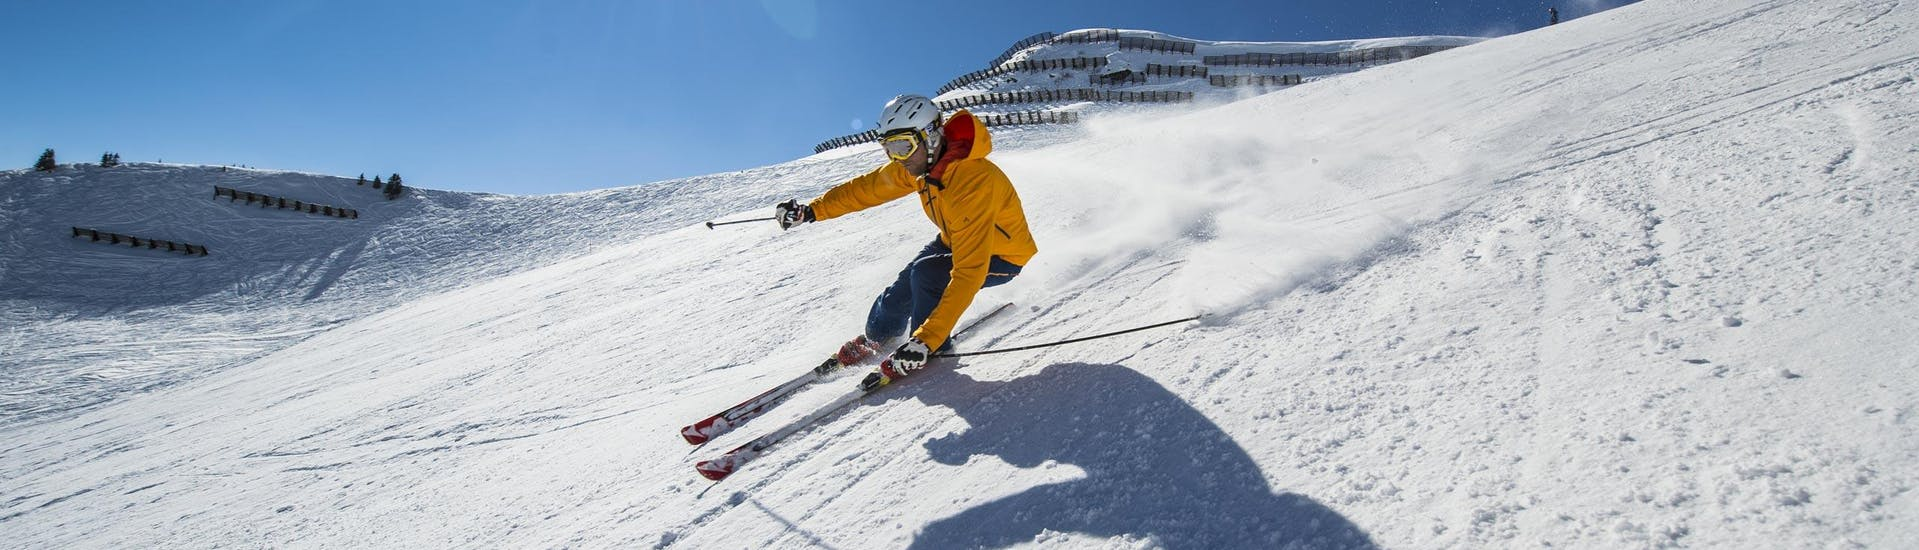 Adult Ski Lessons for Beginners: A skier is skiing down a sunny ski slope while participating in an activity offered by S4 Snowsport Fieberbrunn.